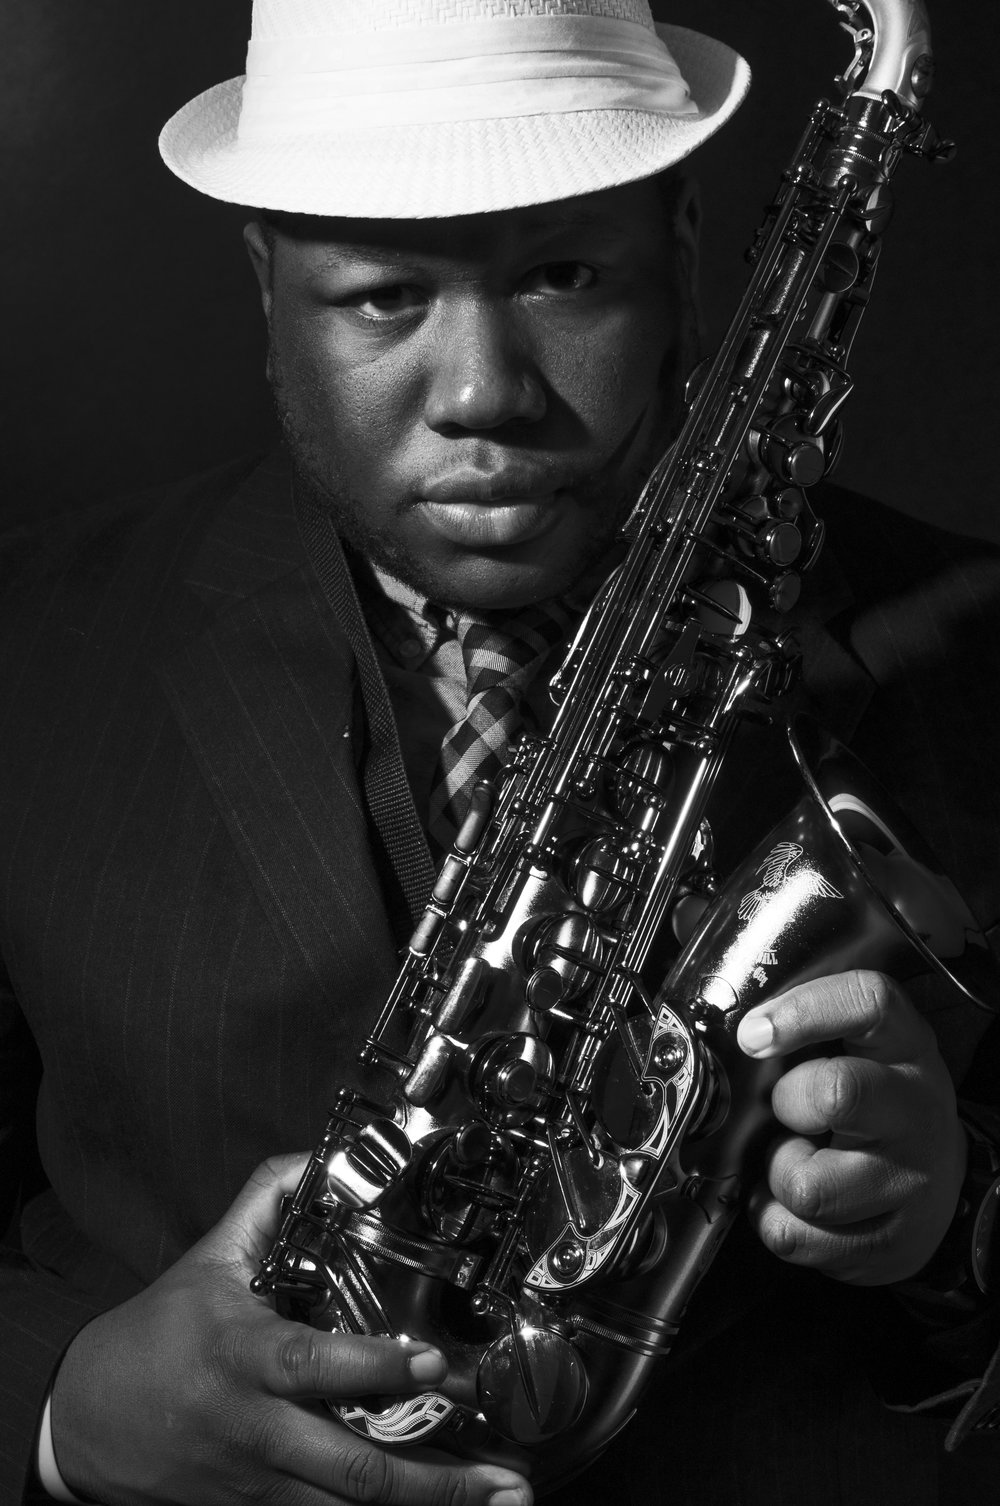 Kelvin_Sax_photogpicks_3 copy.jpg